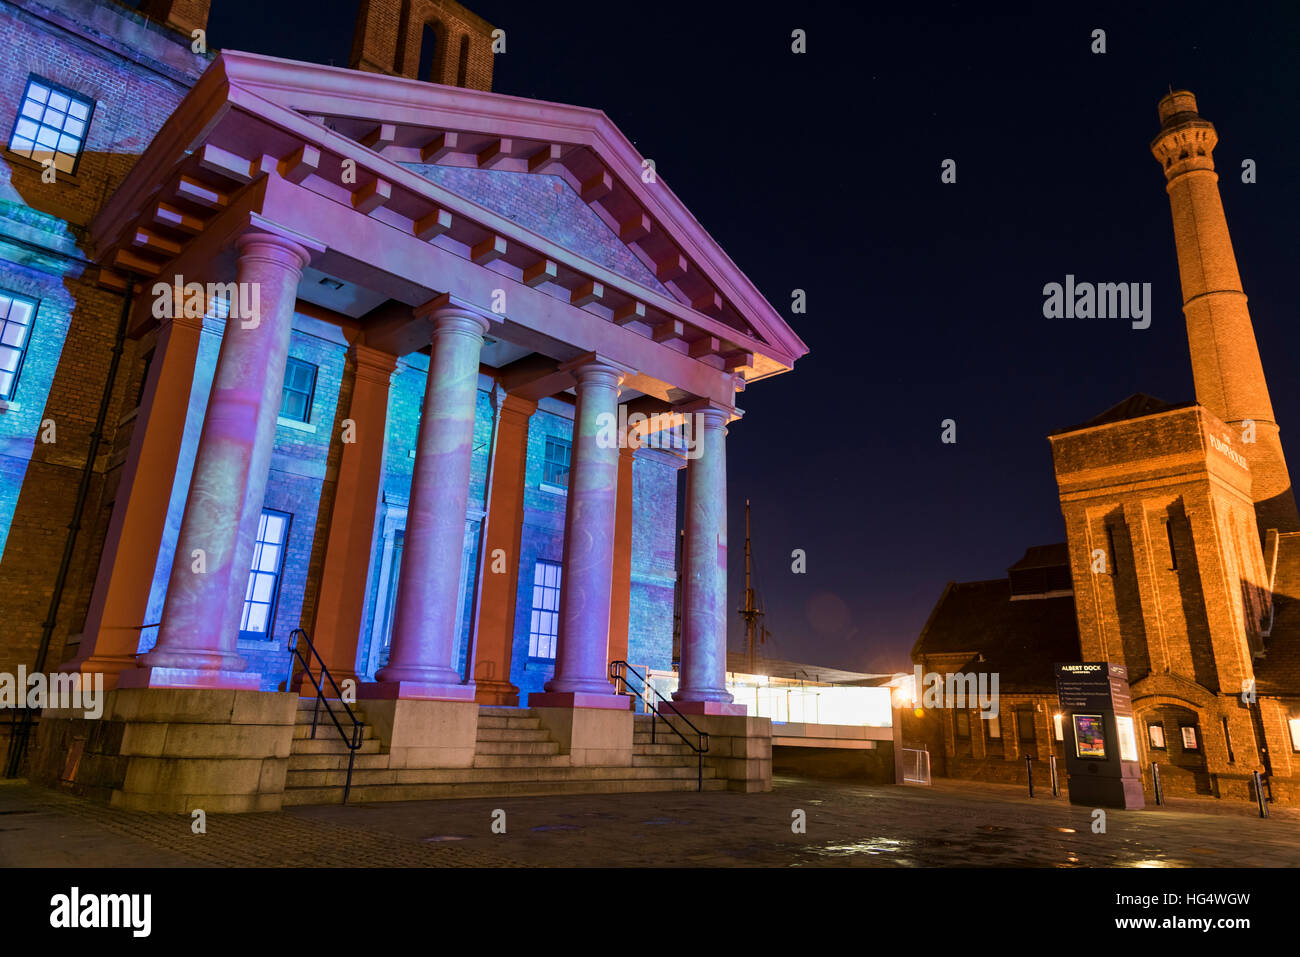 Floodlit iconic Grade I Listed Dr Martin Luther King Jr building (originally the Dock Traffic Office) in Liverpool - Stock Image